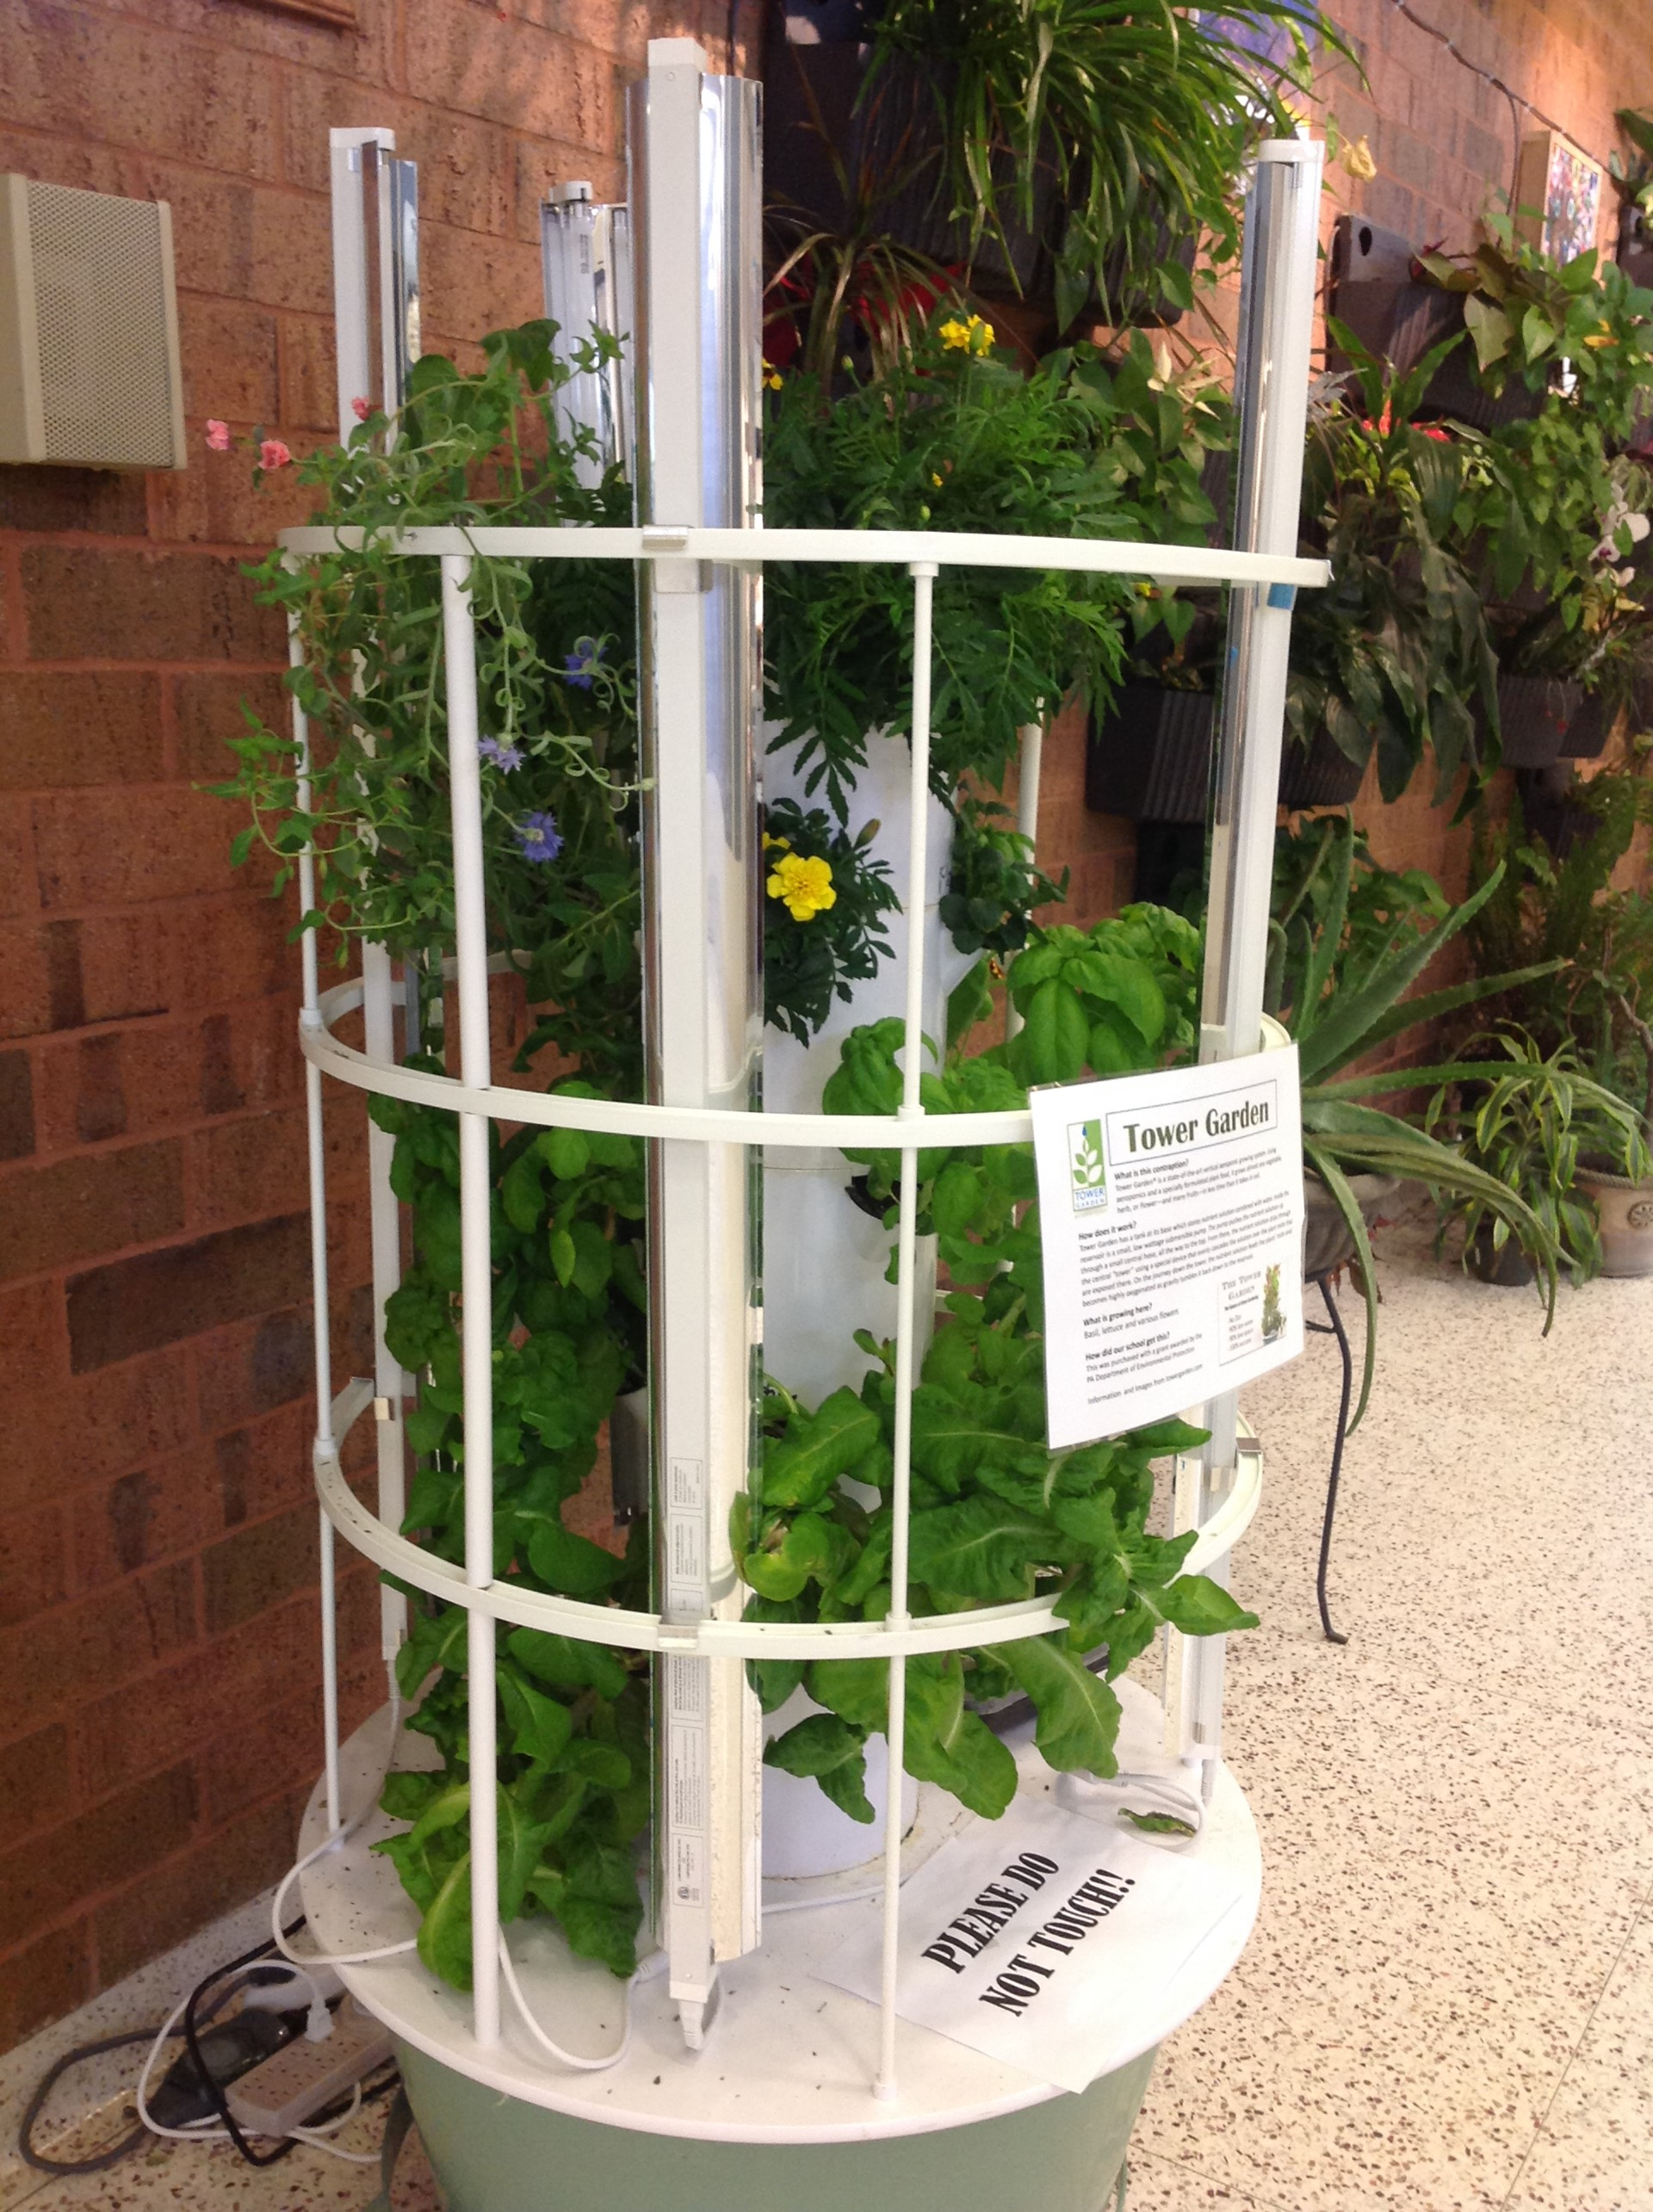 Tower Garden in the School Lobby